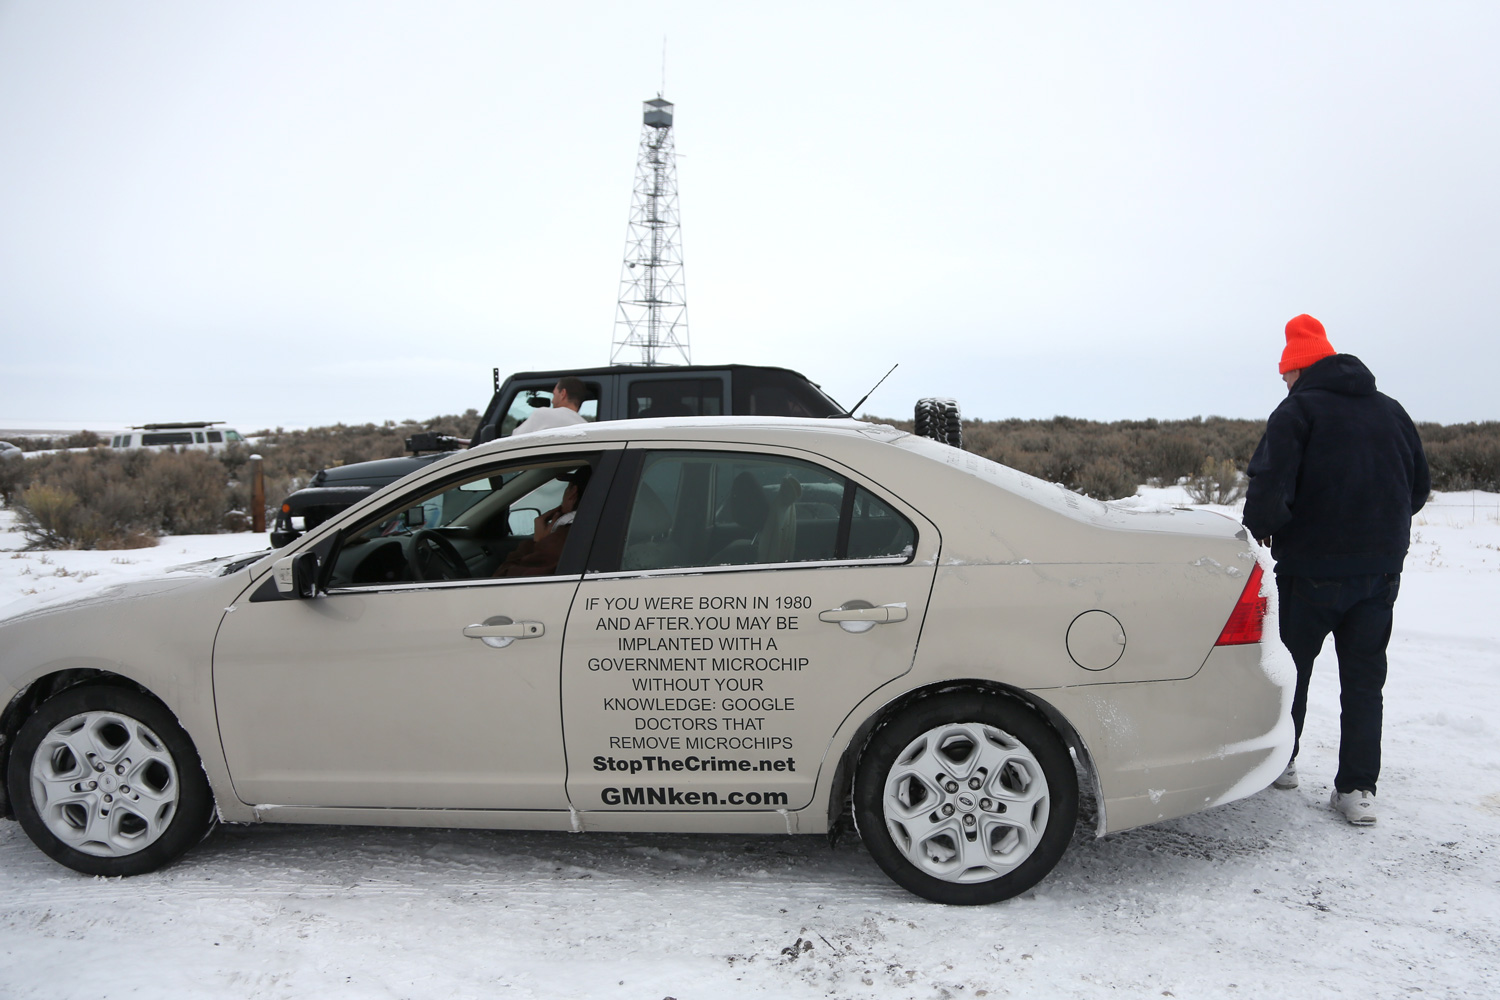 can we make sense of the malheur mess high country news a car ads about government implanted microchips links to websites about various conspiracy theories parked at the entrance to the refuge